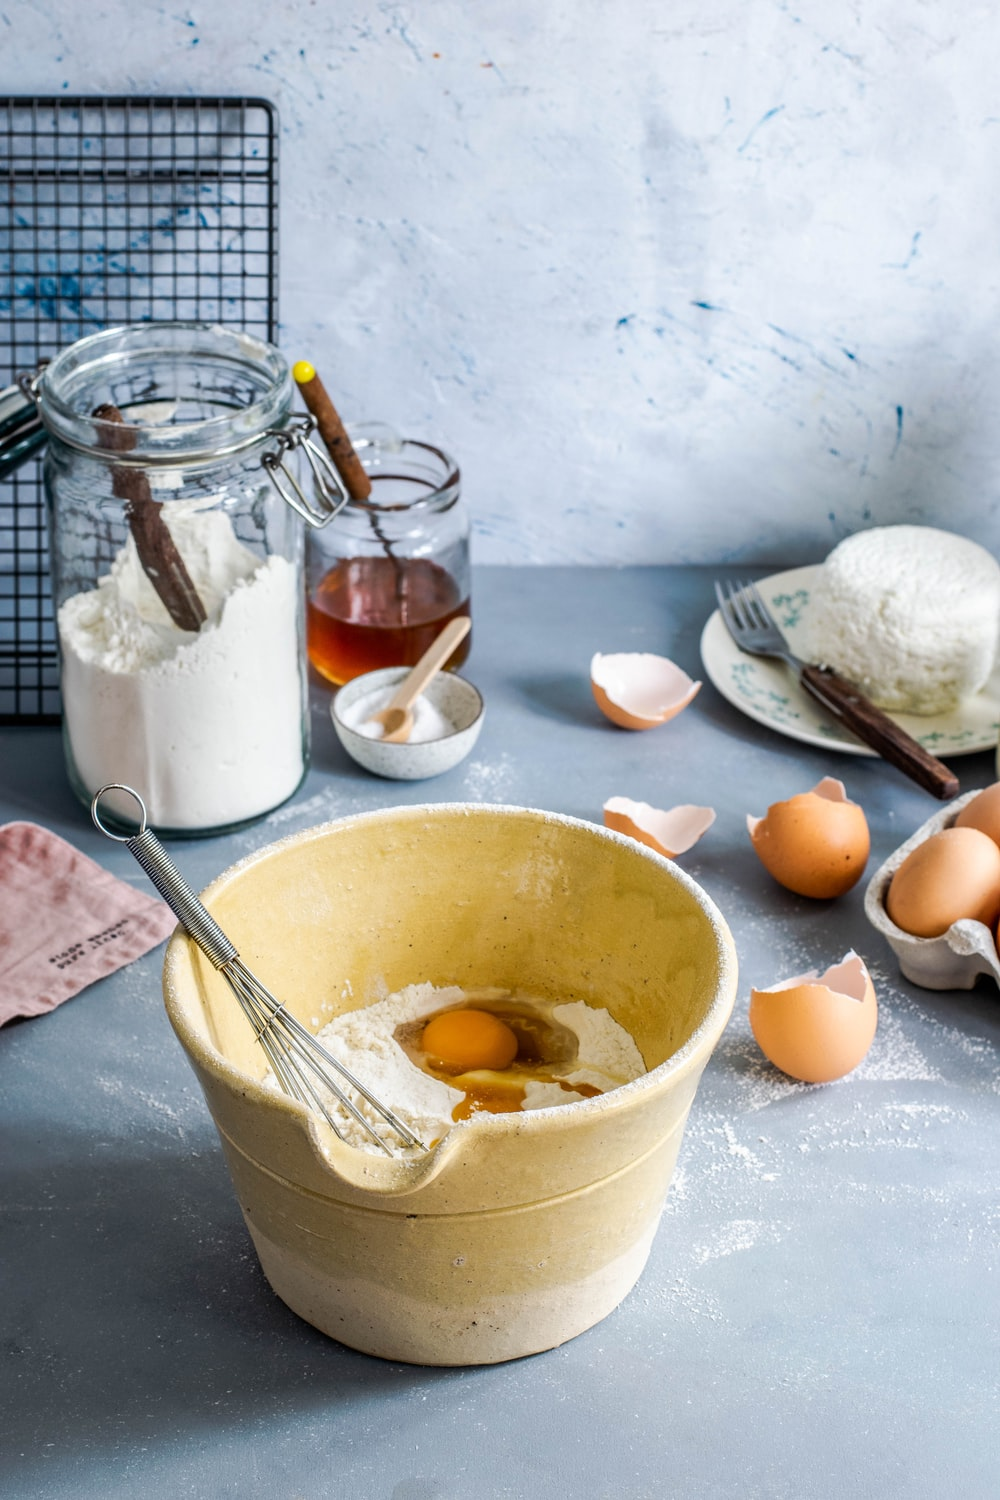 brown mixing bowl with eggs and flour with whisk